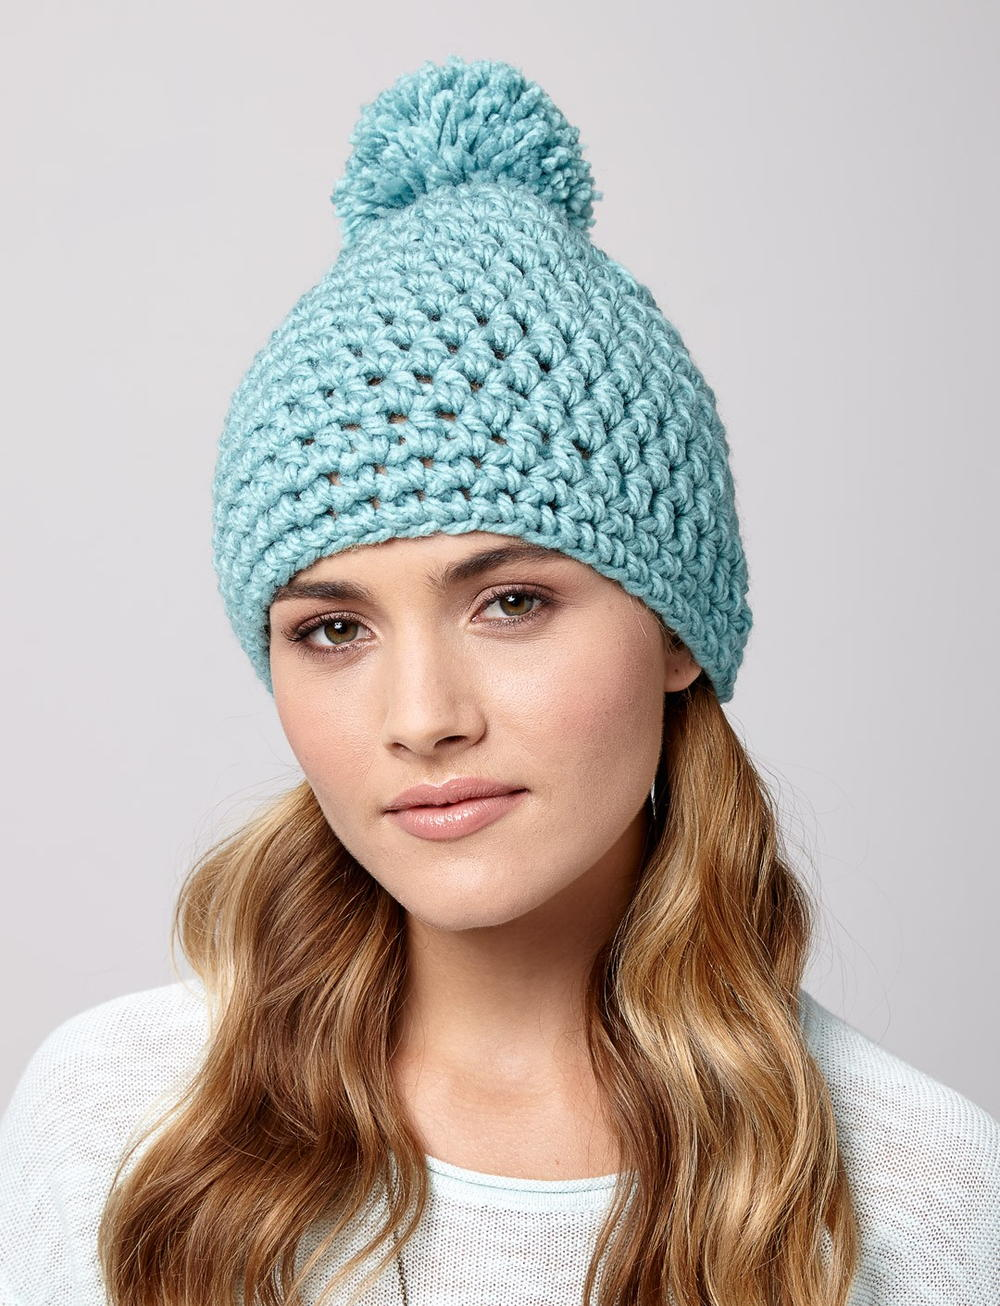 50 free beginner crochet hat patterns allfreecrochet snow drift crochet hat bankloansurffo Images